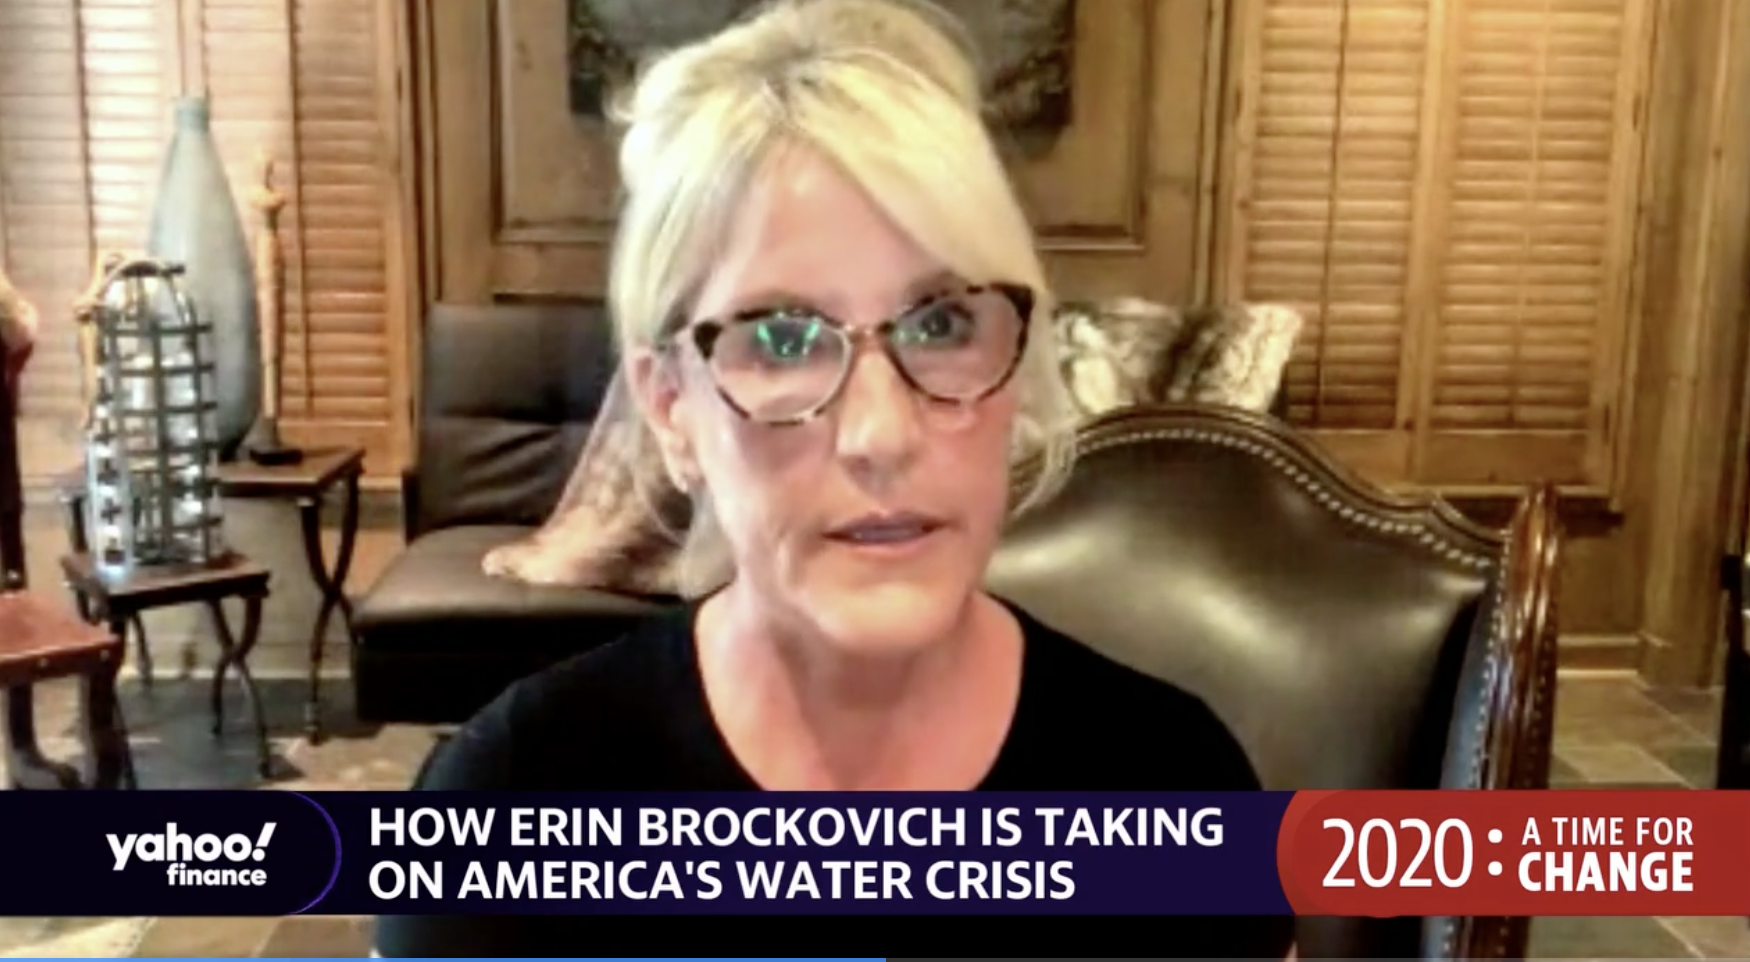 Erin Brockovich: 'We're in big trouble if we don't start taking action' on climate change